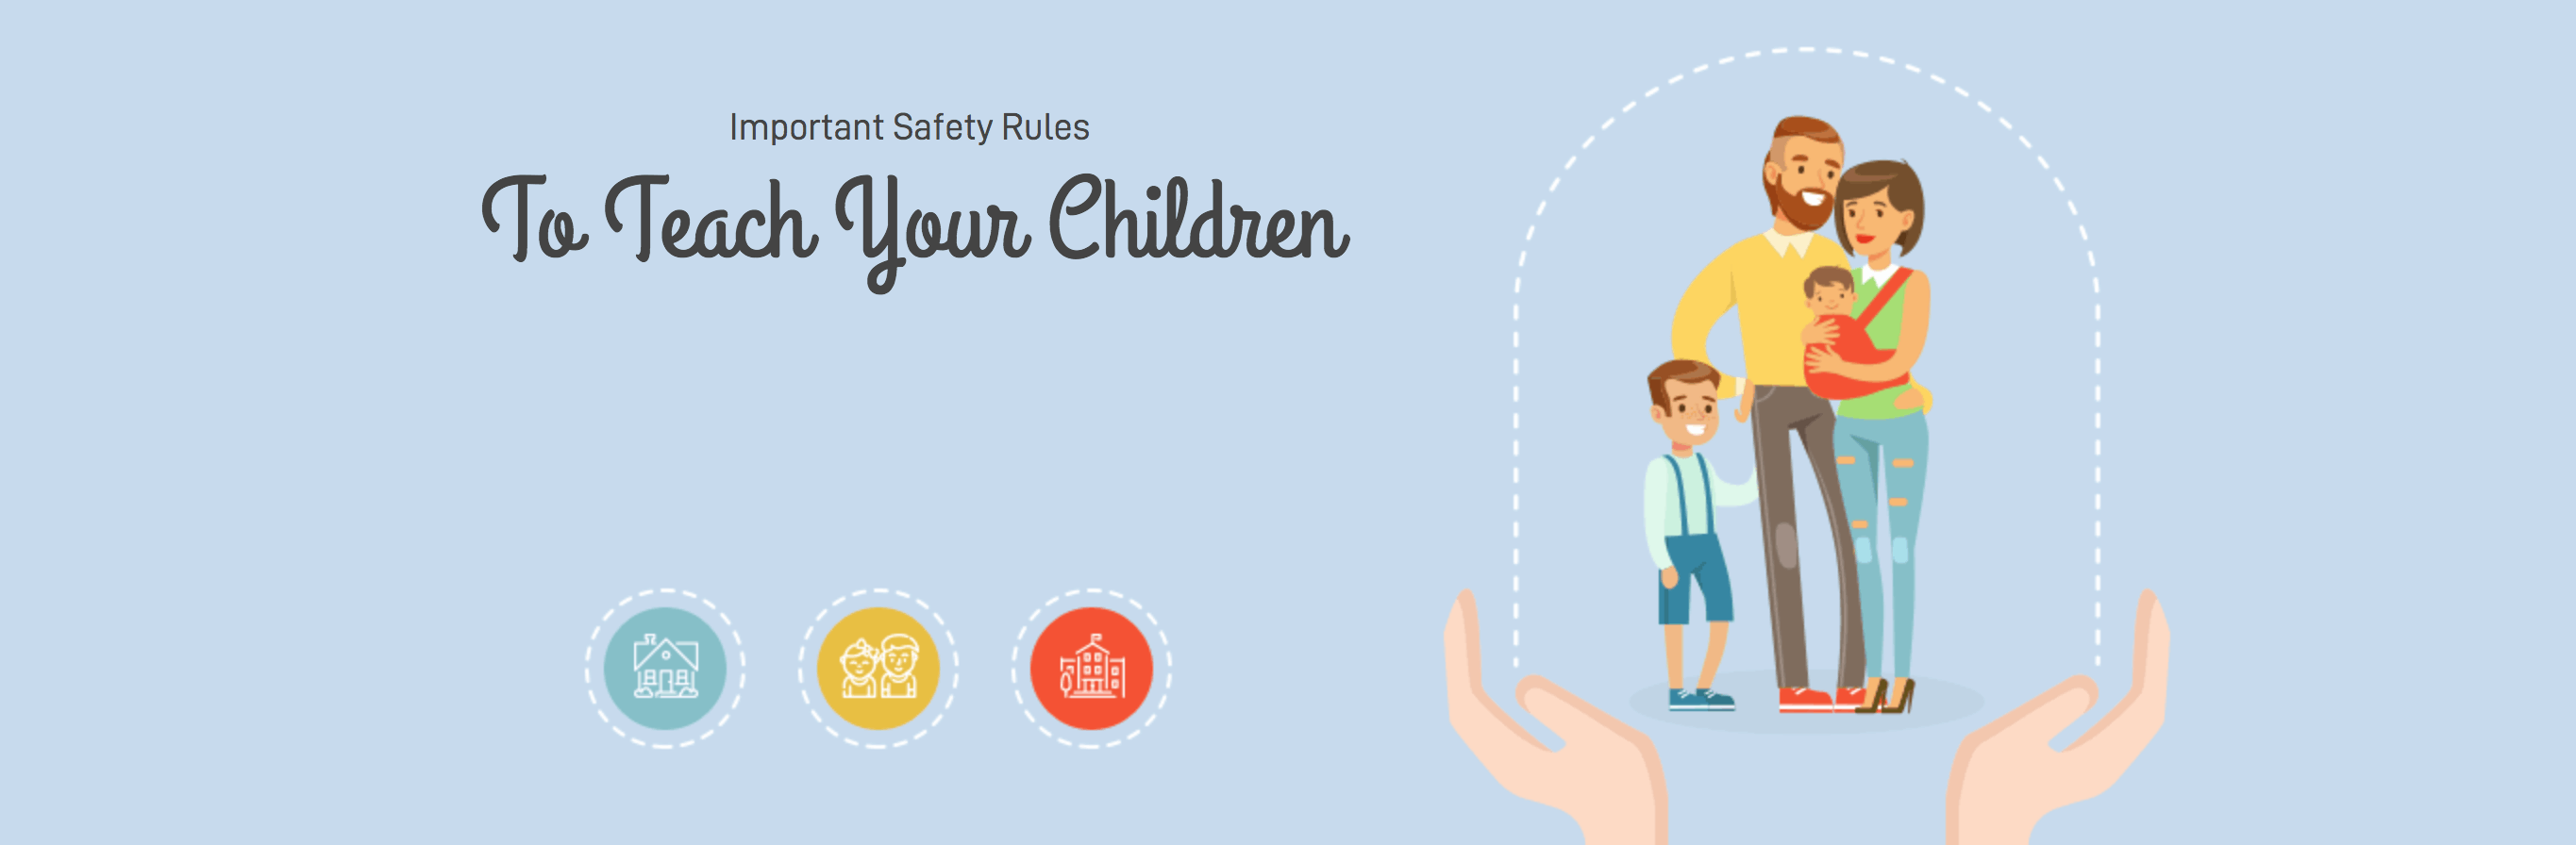 Important Safety Rules To Teach Your Children - SafeHome org